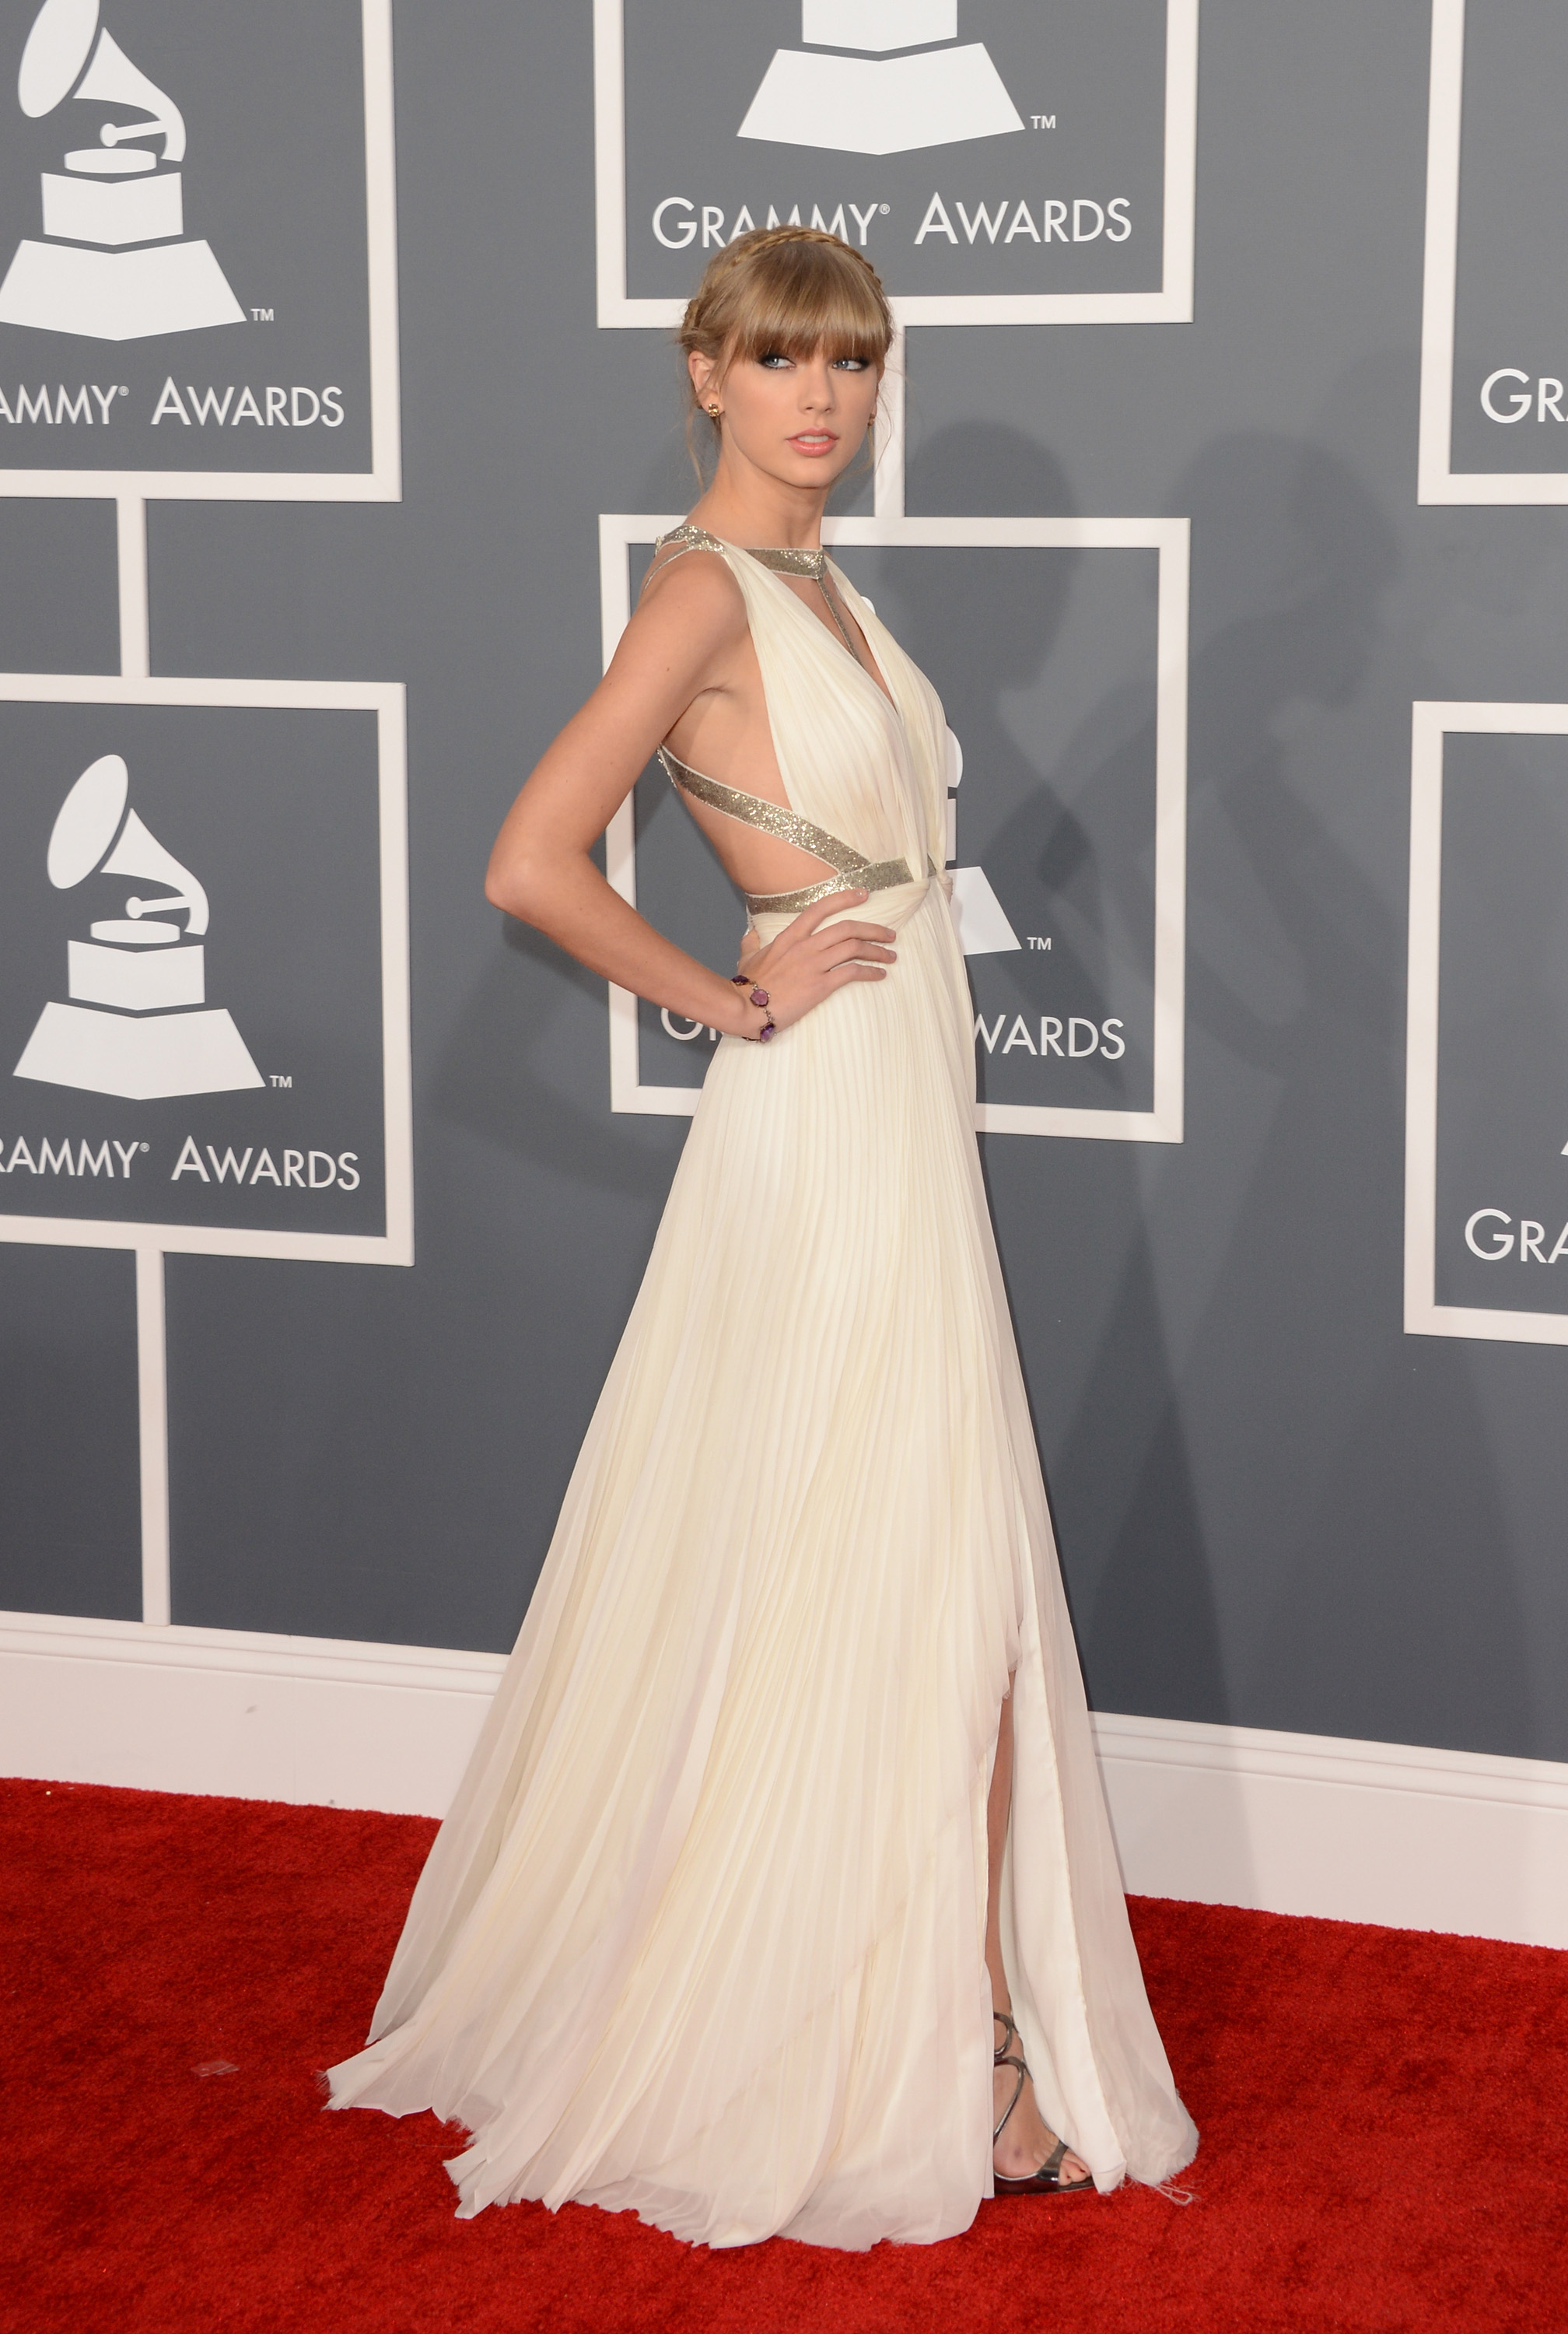 Before opening the show with a performance, Taylor Swift took to the red carpet in a creamy J. Mendel gown.